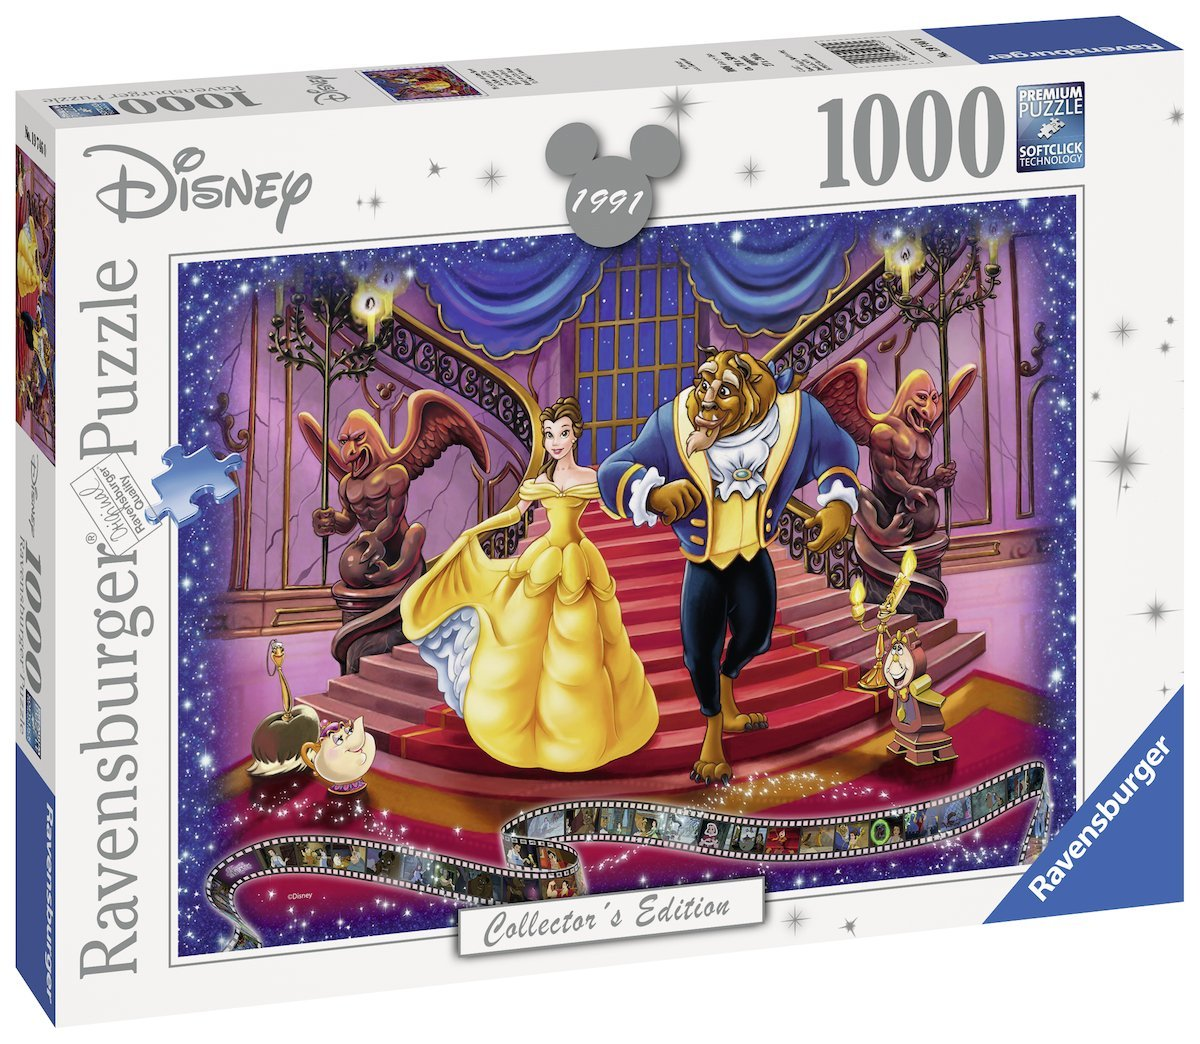 disney die sch ne und das biest 1000 teile ravensburger puzzle online kaufen. Black Bedroom Furniture Sets. Home Design Ideas